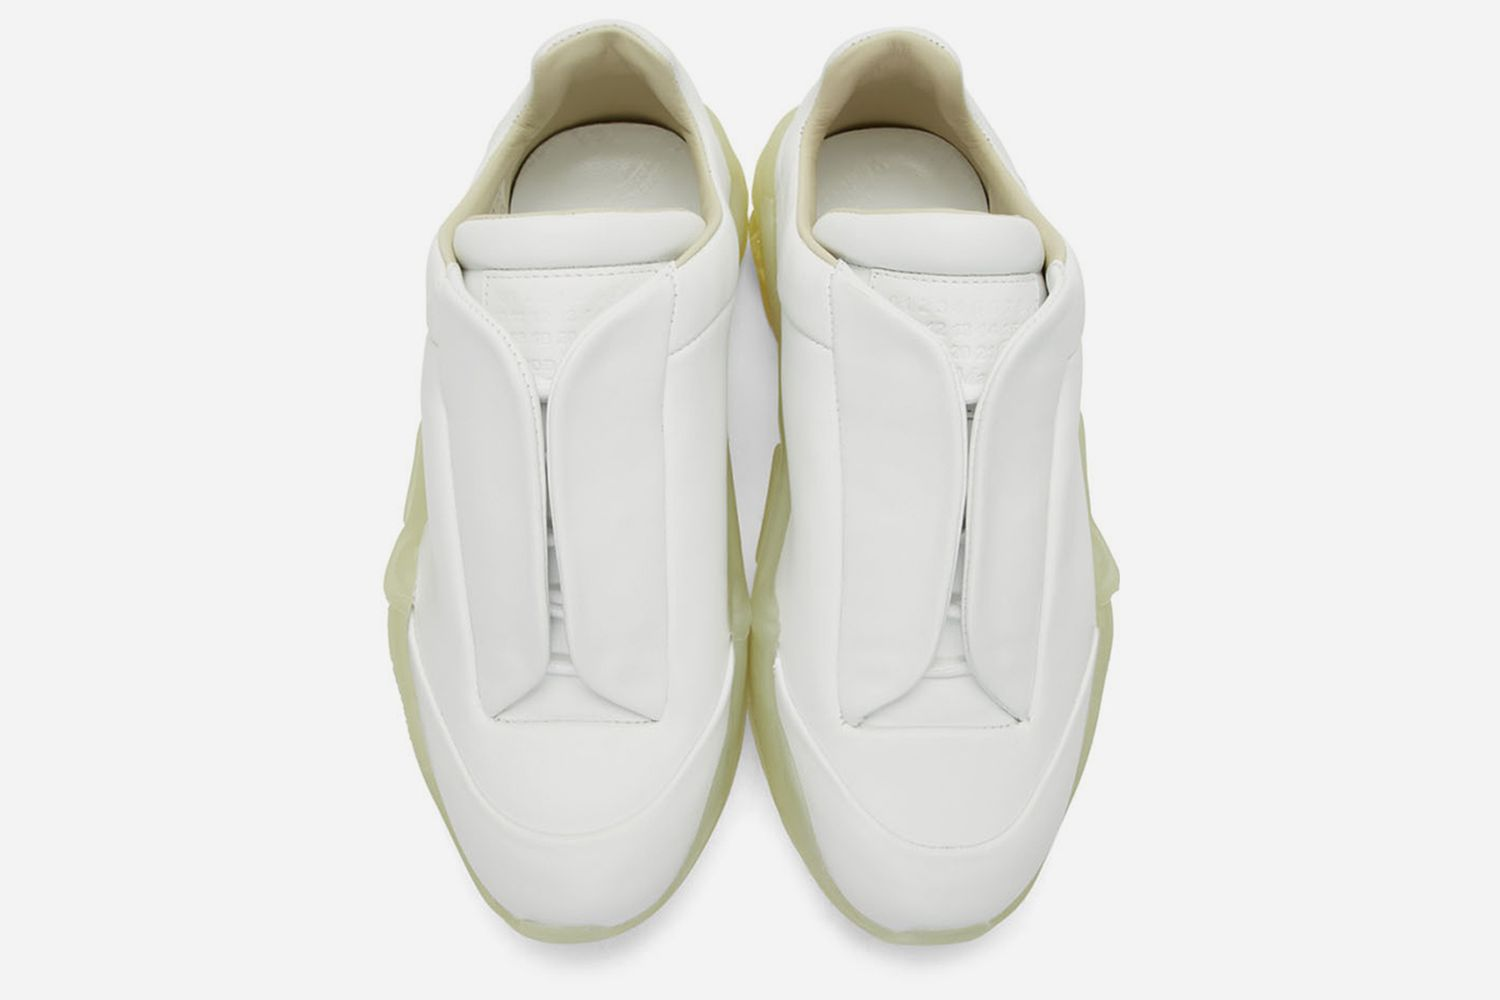 New Future Sneakers